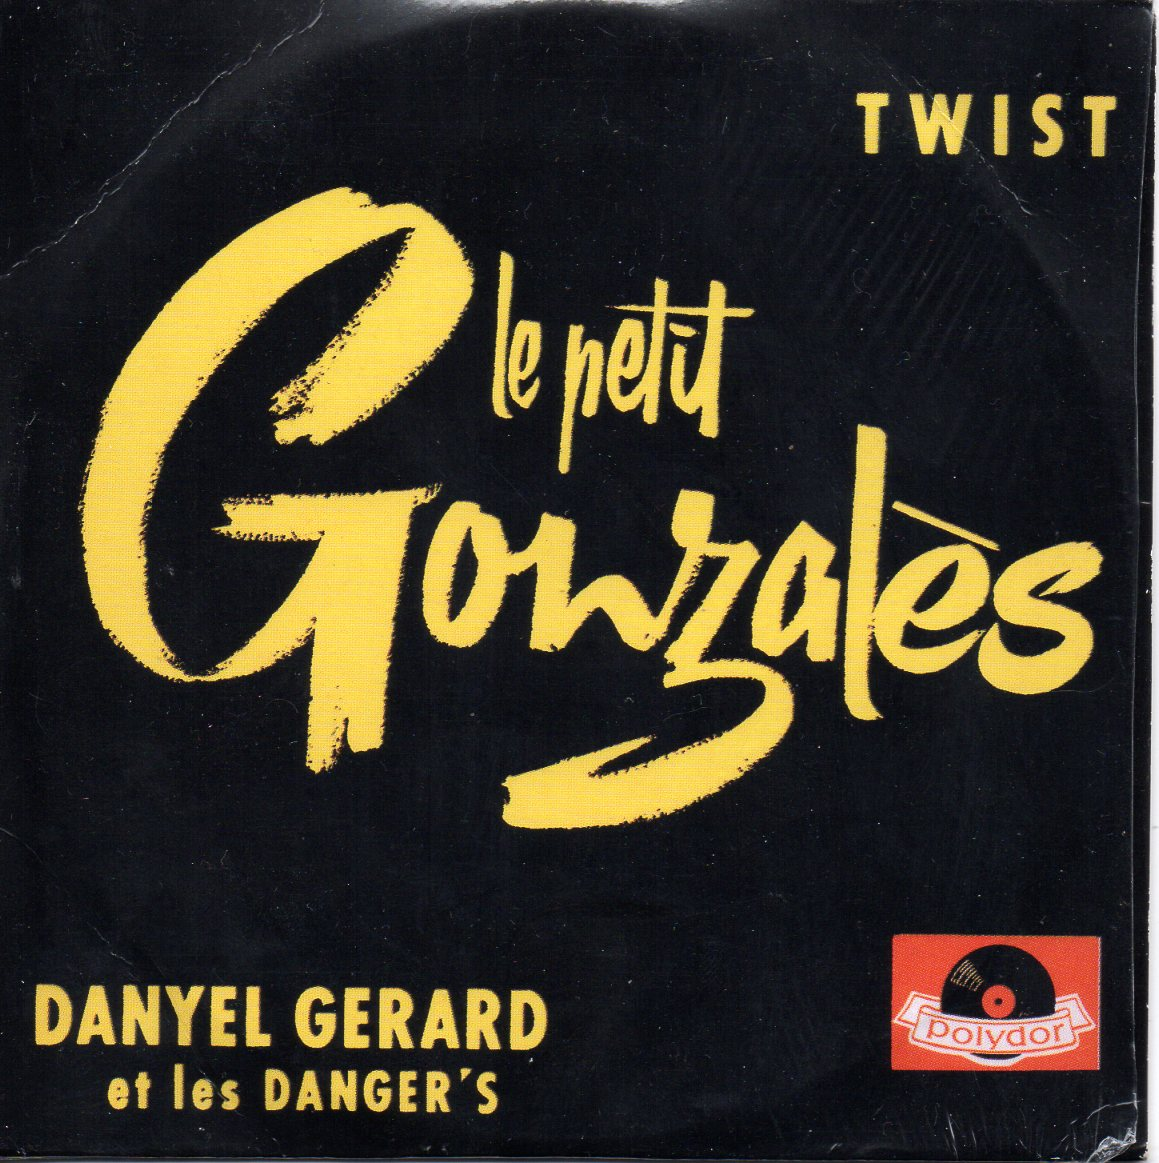 DANYEL GERARD - Le petit gonzales ltd ed ORIGINAL 60s french Sleeve 4-track CARD SLEEVE - CD single